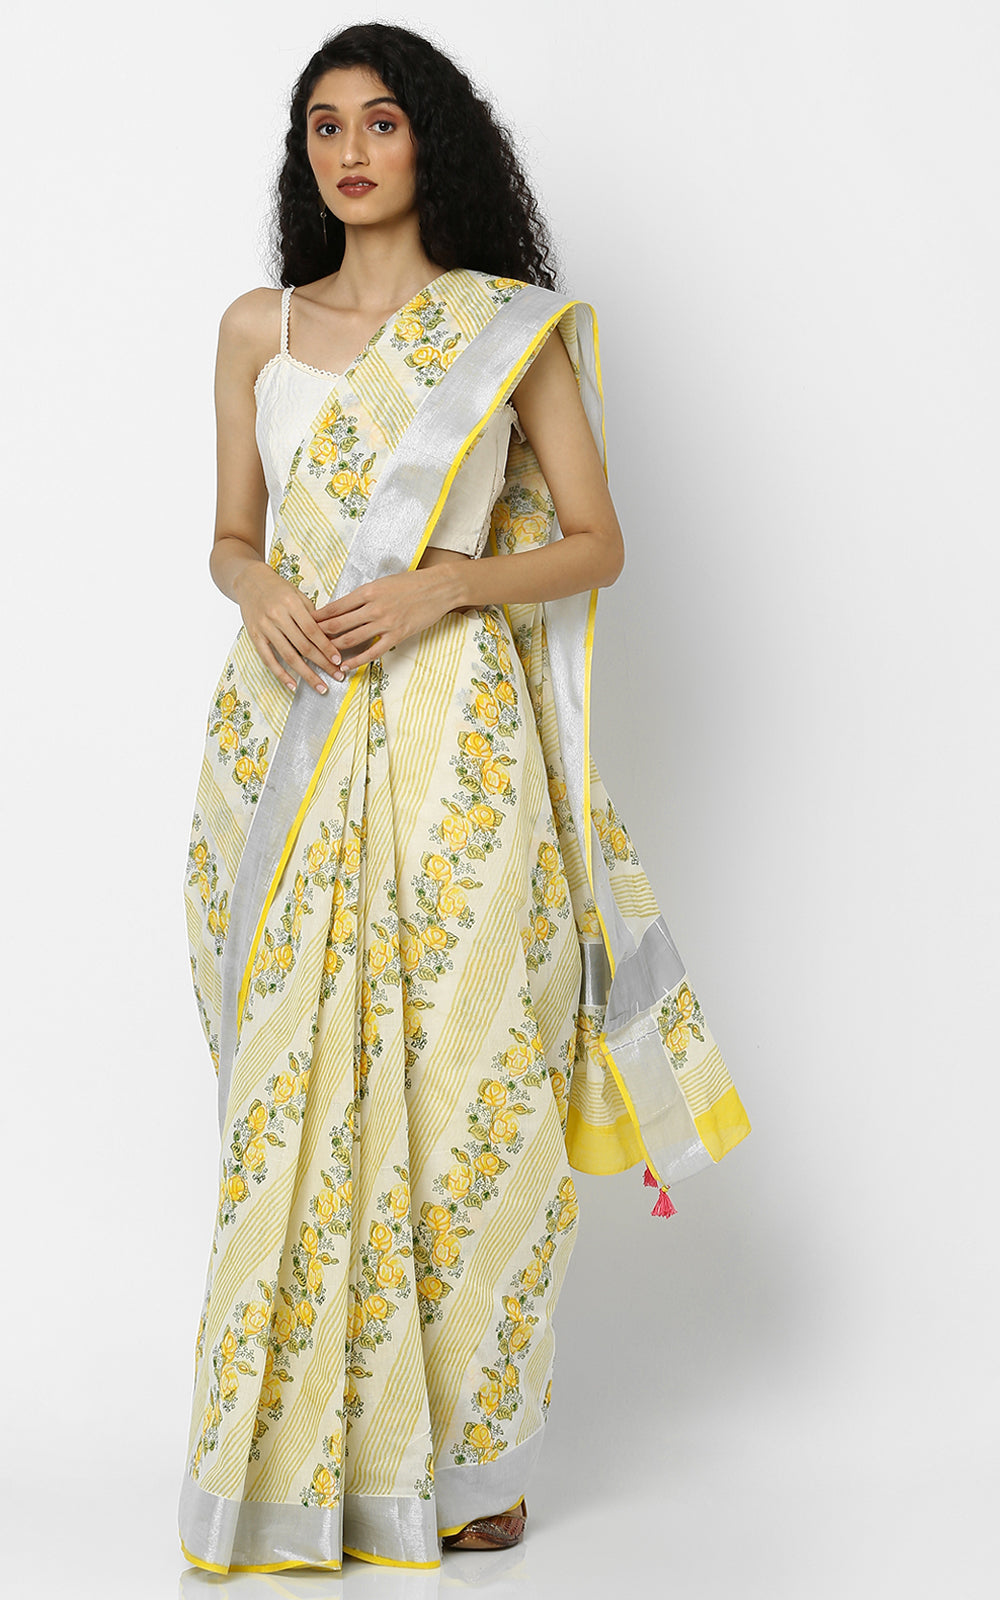 KARALA KASAVU SAREE WITH YELLOW HAND BLOCK PRINT